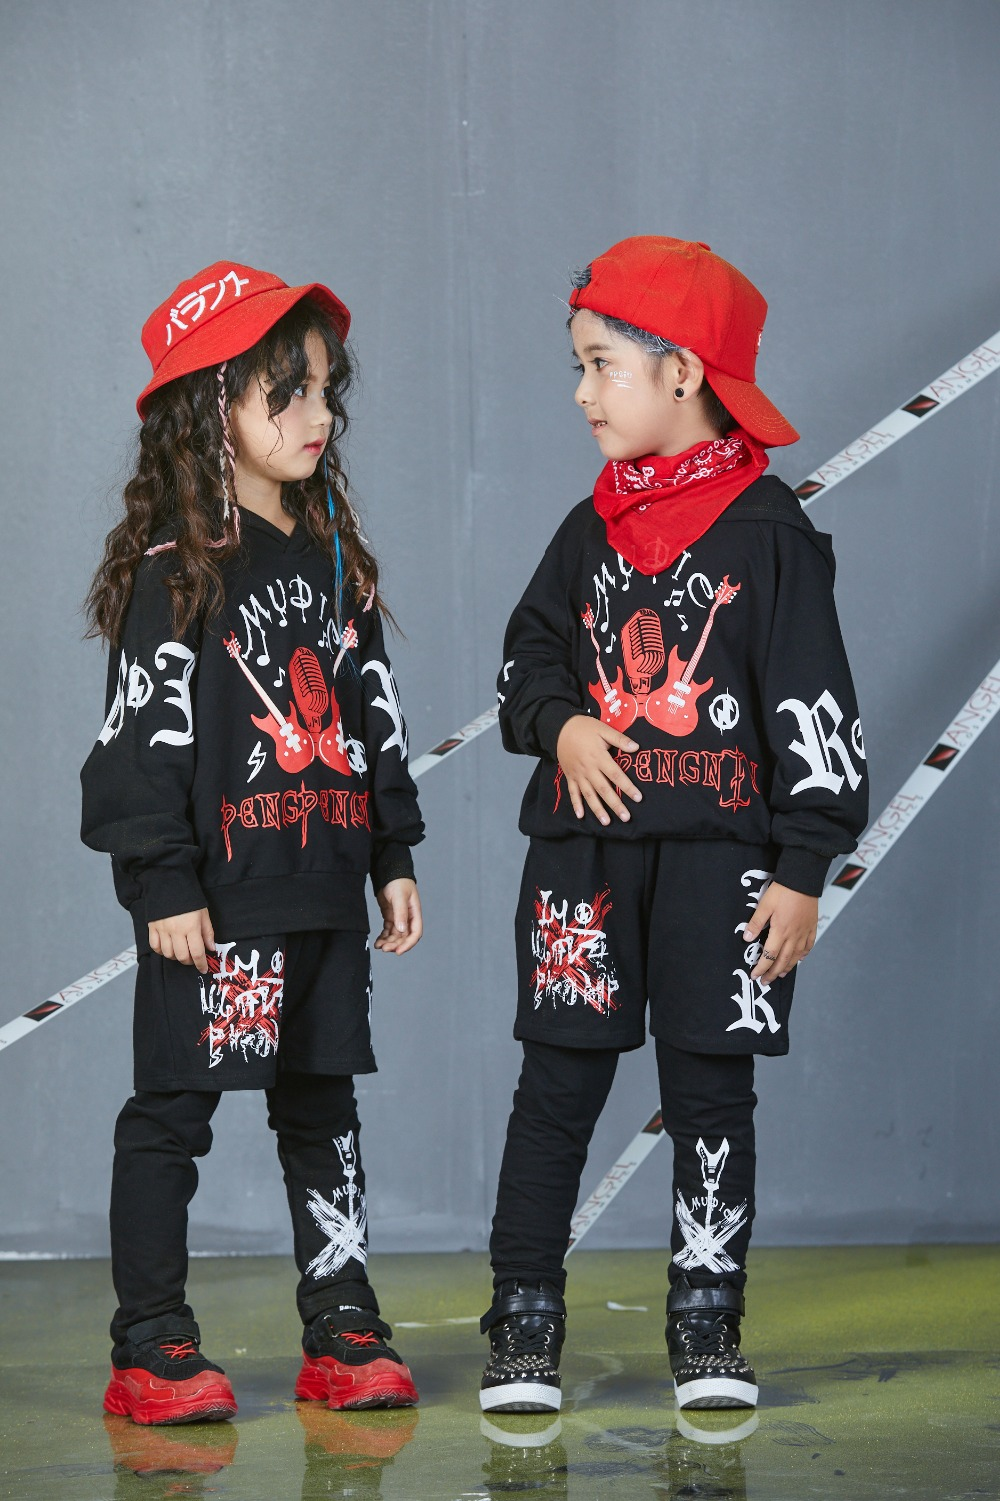 Autumn Spring Kids Street Dance Clothes Sets Fashion Hip Hop Clothing 2019 Brand High Quality Sport Suit for Teenage Boys Girl (20)